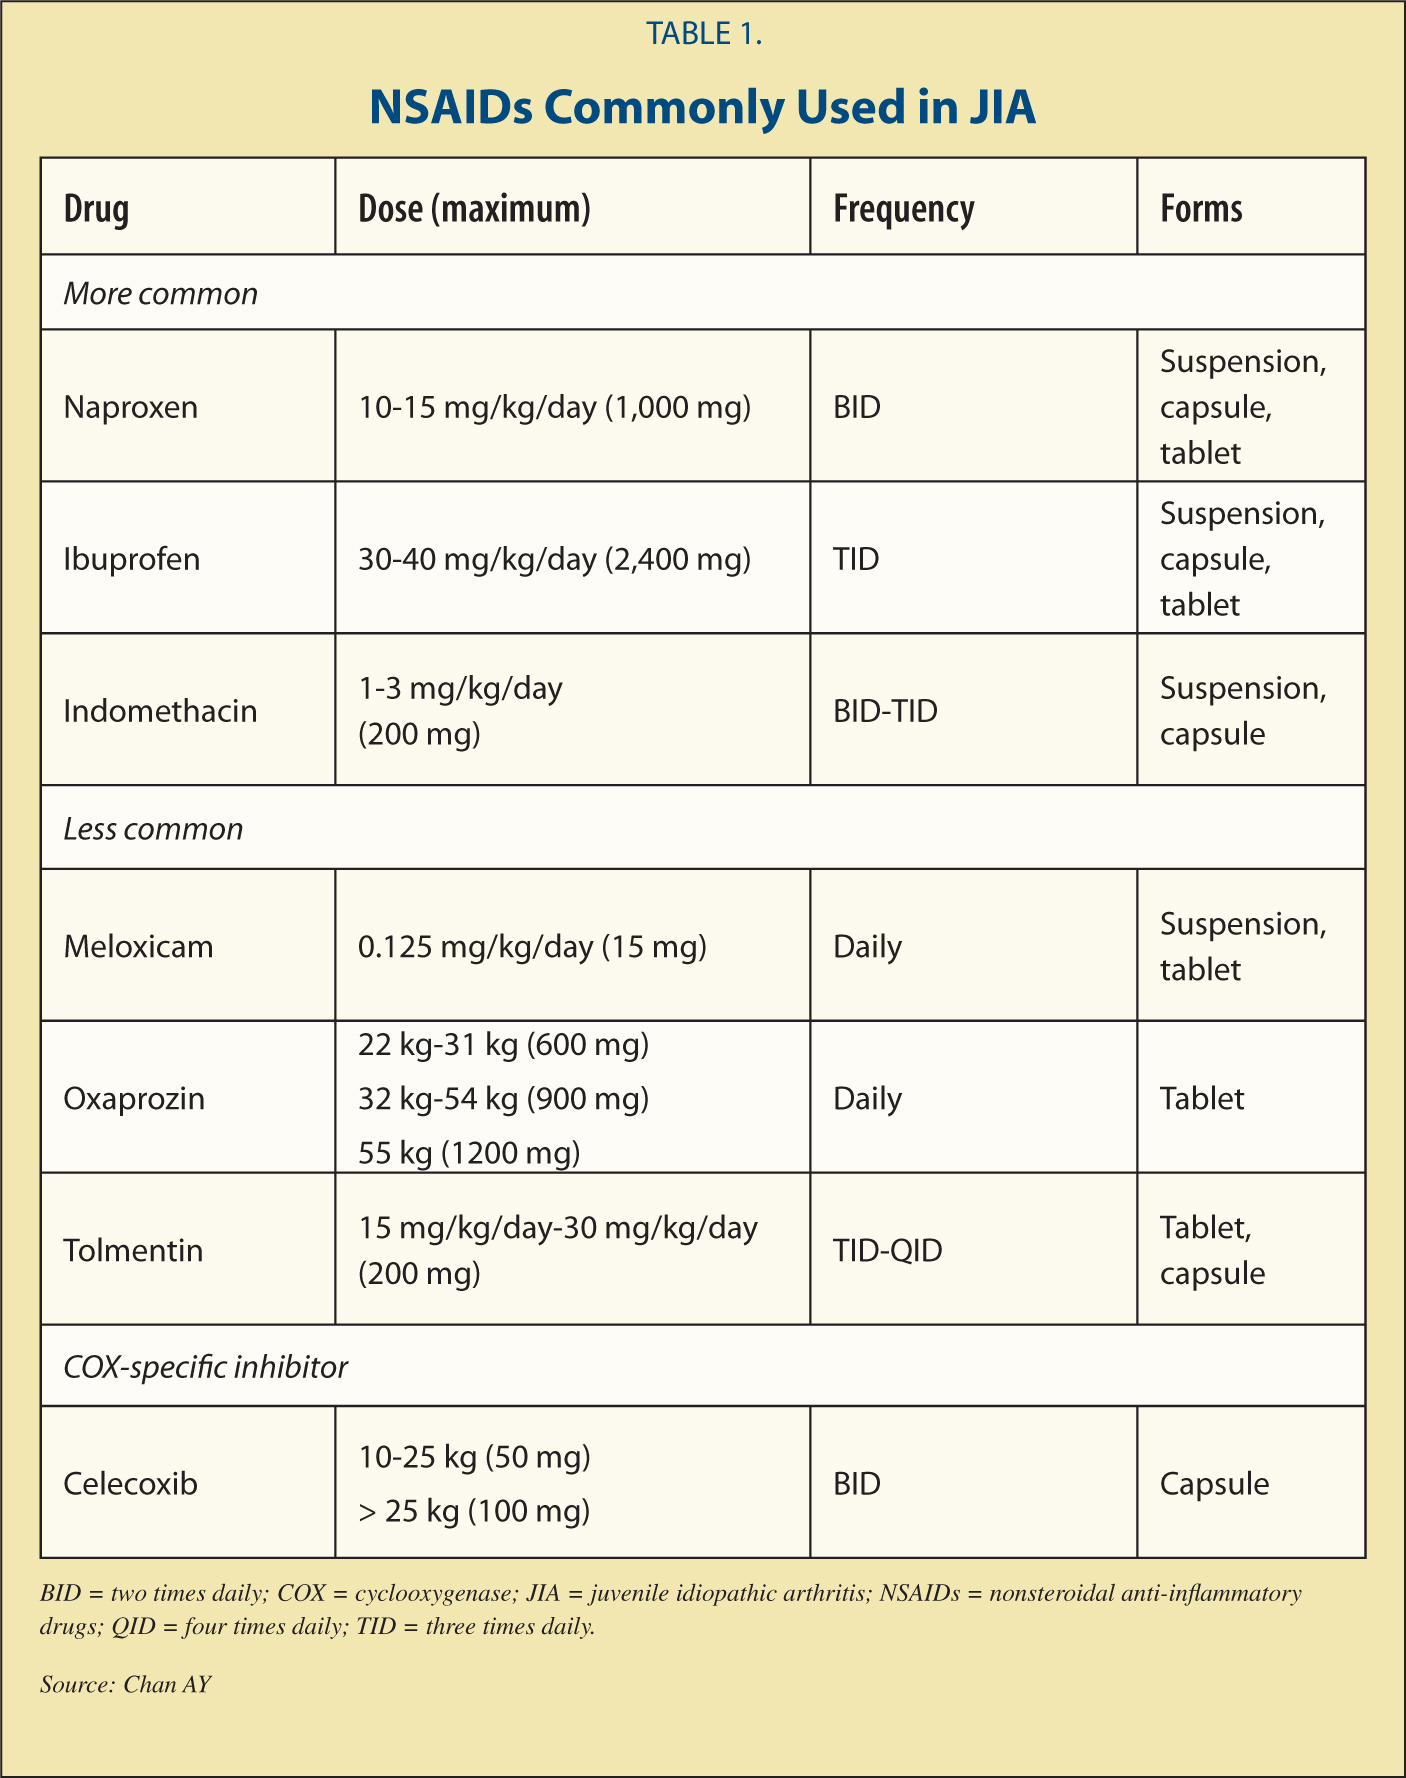 NSAIDs Commonly Used in JIA